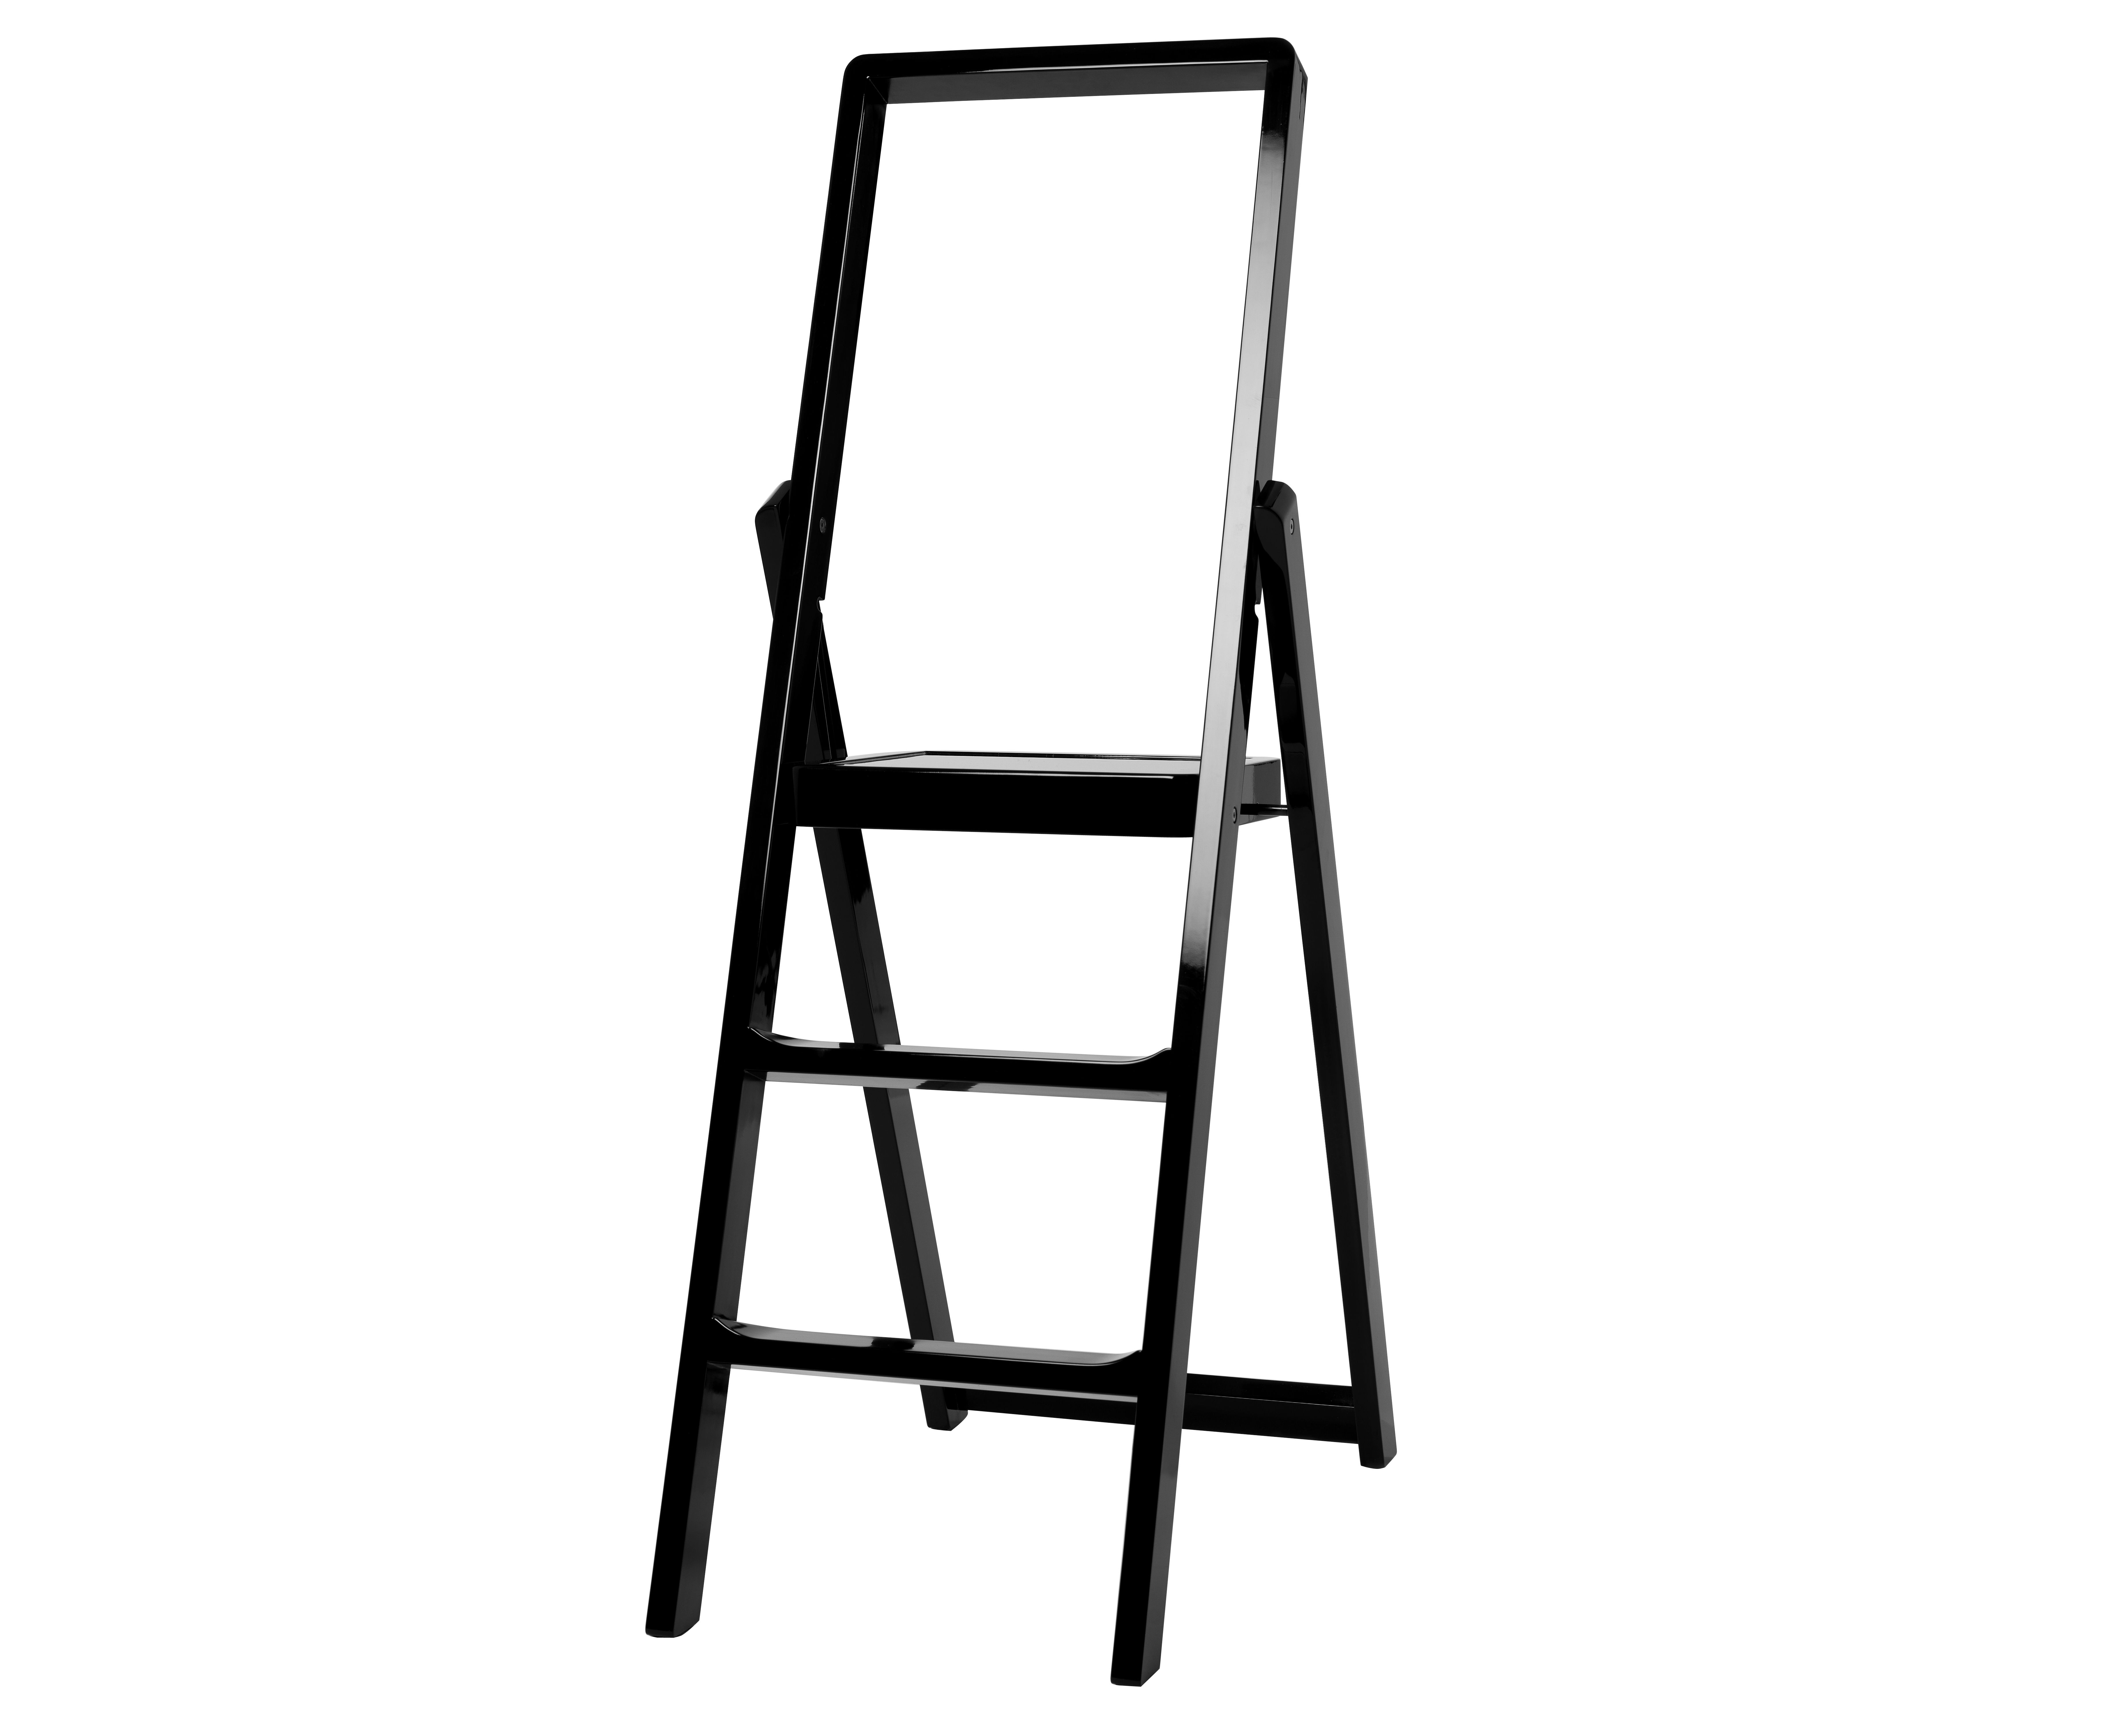 Furniture - Miscellaneous furniture - Step Stepladder - Foldable by Design House Stockholm - Black - Lacquered wood